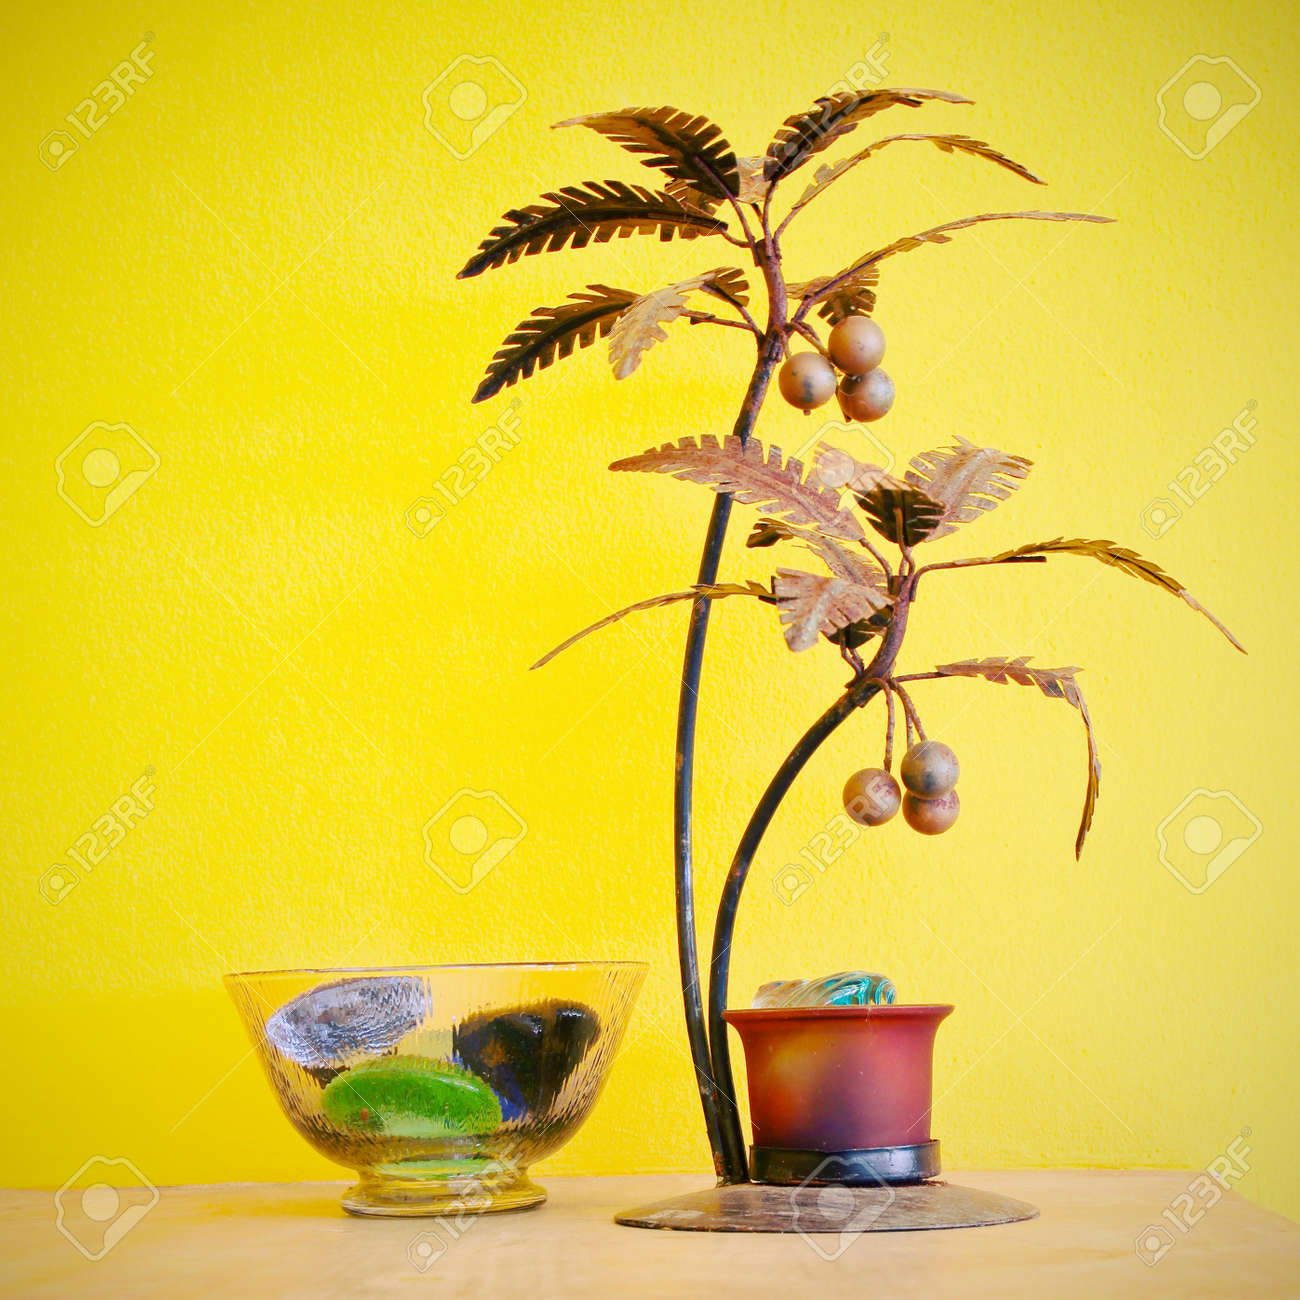 Decorative Tree And Yellow Wall With Reto Filter Effect Stock Photo ...